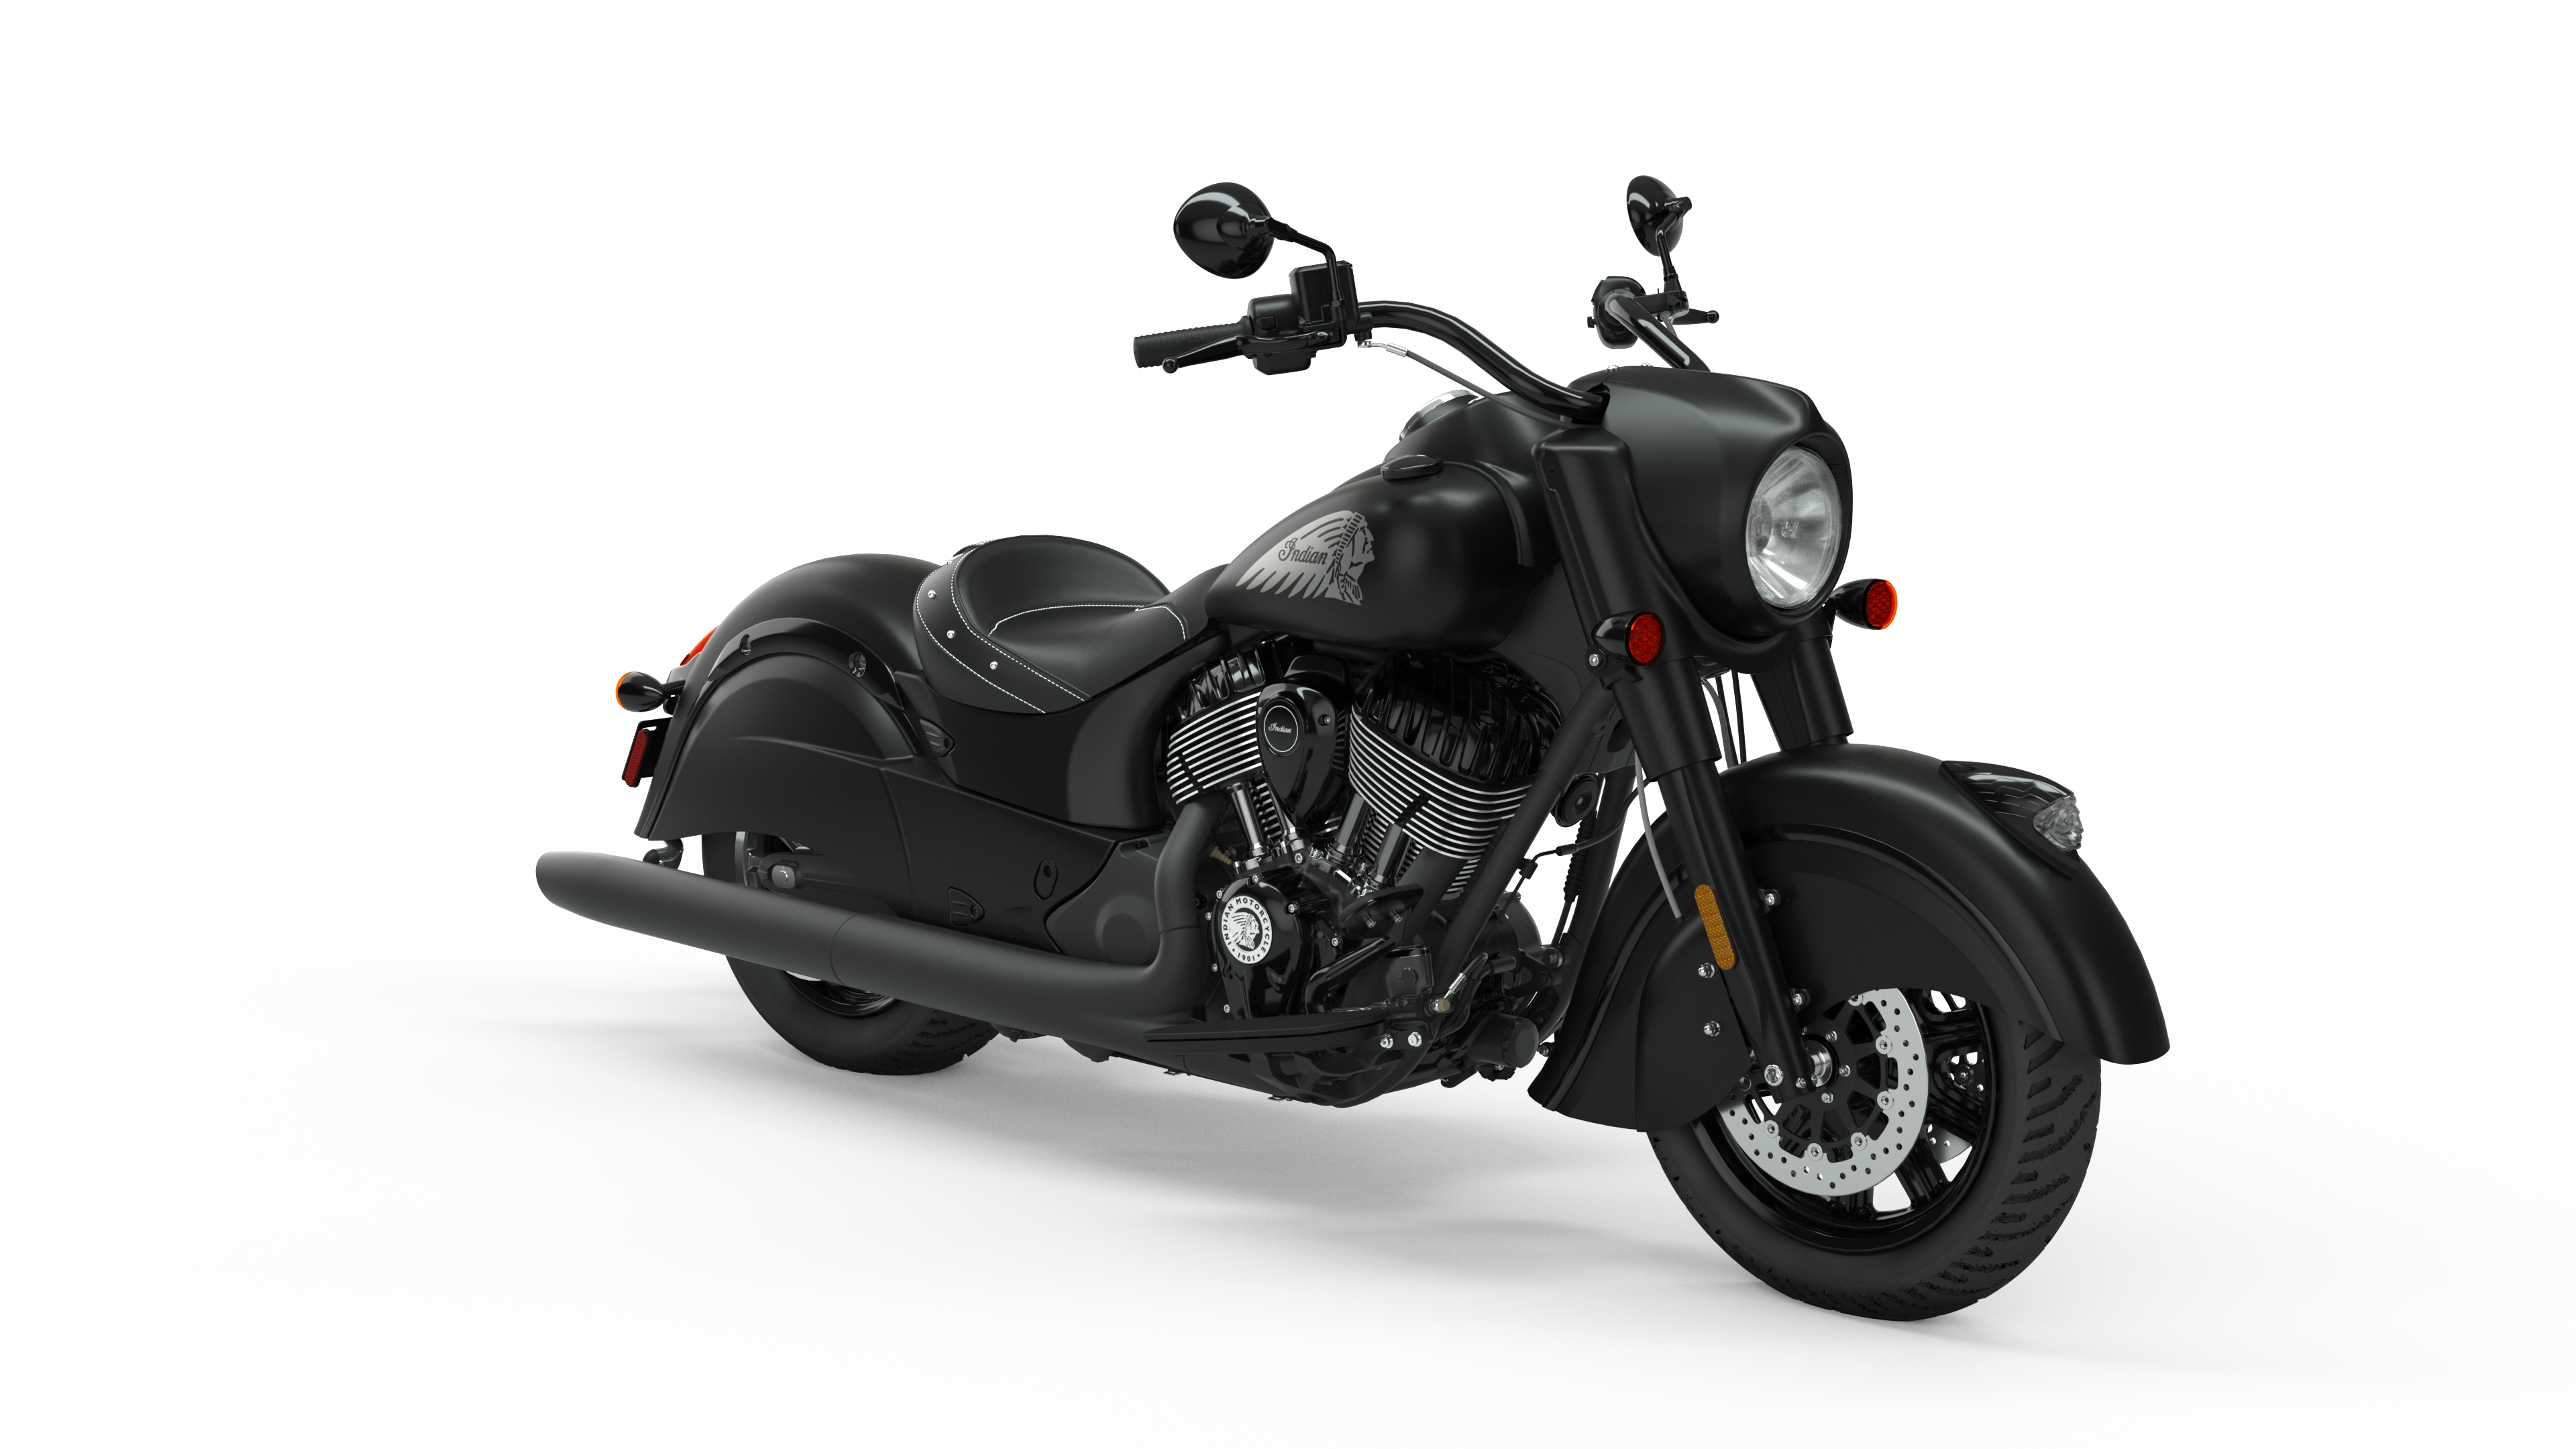 2020 Indian Chief Dark Horse Cycle World